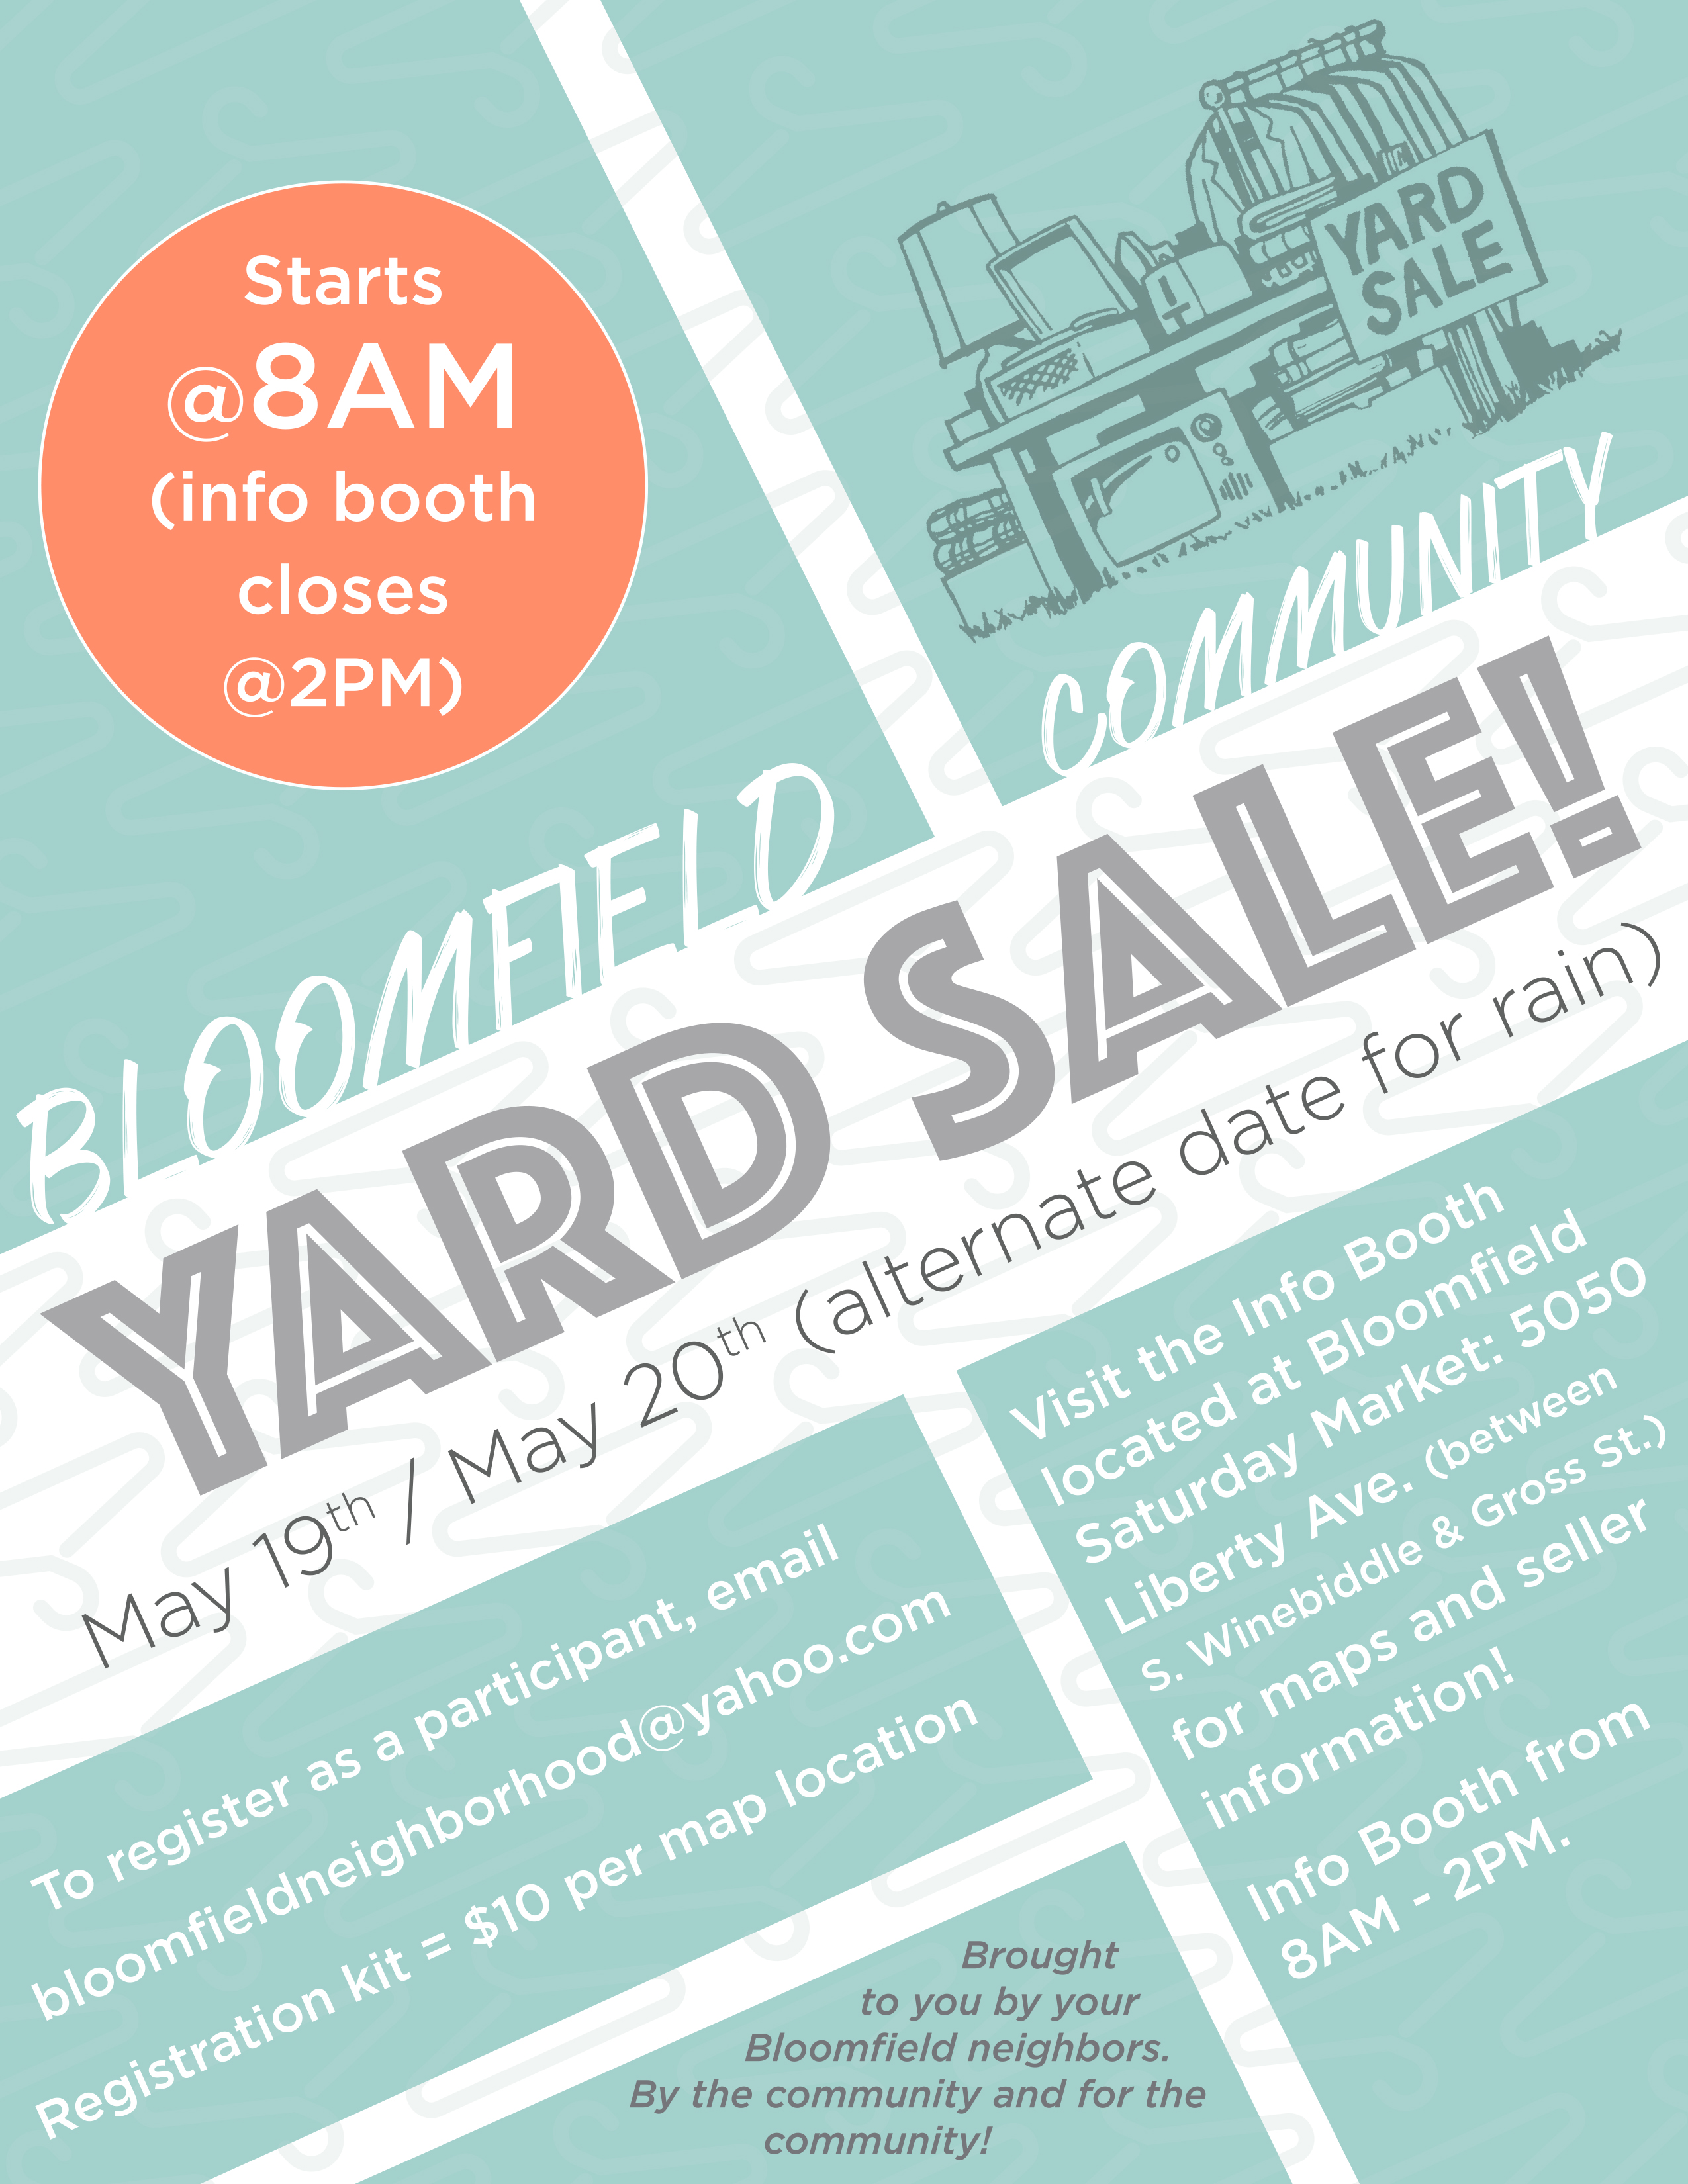 SAT 05 19 2018 Event Bloomfield Community Yard Sale